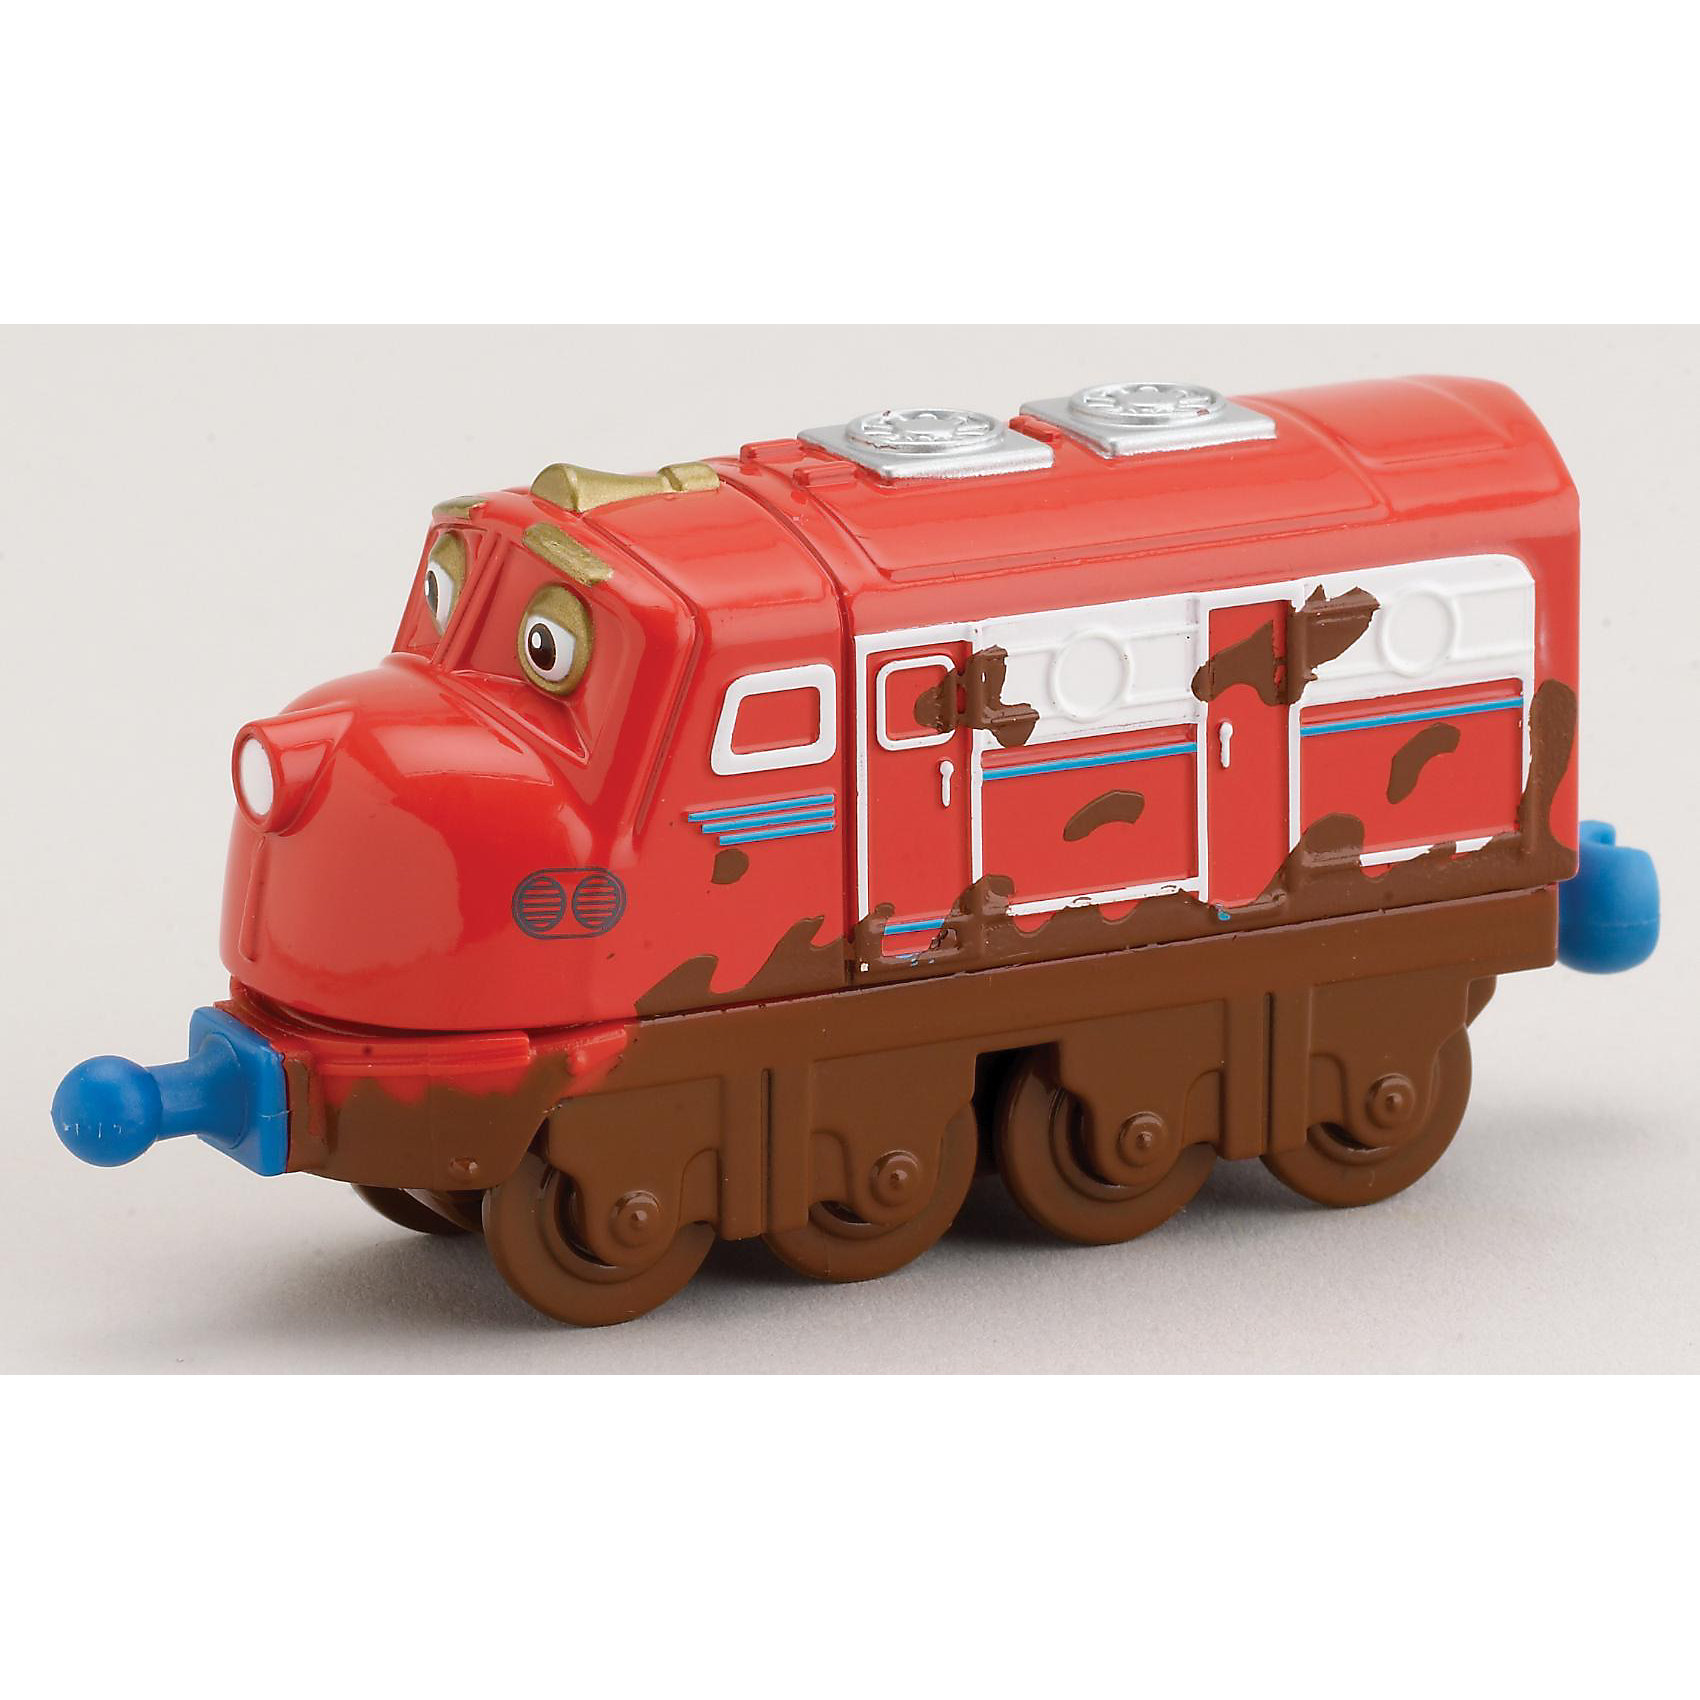 ��������� ������ � �����, ��������������� Die-Cast Chuggington (����������)  ��� ����� ������������� ����������, ��������� �� ������� ������������ ������� ���������� �� �����������. ������� ���������� ���������� �����, ��������� ���������� �� ����������� � ������ ������, ��� ����� ������ � ������ �������� ���� ����� � ������� ������.<br><br>������� ��������� ������ (Wilson) - ������������ �����, ������� ����� ����� ��������, �������� �������� ��� ���������� �� ������� �����. ����-������� ��������� �������� ���������, ��� ��� ������ ����� ��������� ������, � �� ������� �������� ����� �����. <br><br>��������� ������� ���������� ���������� � ������� ������������.<br><br>�������������� ����������:<br><br>��������: ������.<br>������� ����������: 8 � 3 � 5 ��.<br>������� �������: 14 � 4 � 17 ��.<br><br>������������� ������� ��� �������-������� ��� � ����������� ������������ � �����������.<br><br>������ ��������� ���������� ������ � ����� ����� � ����� ��������.<br><br>������ ��: 170<br>������� ��: 40<br>������ ��: 140<br>��� �: 140<br>������� �� �������: 36<br>������� �� �������: 1164<br>���: �������<br>�������: �������<br>SKU: 2022567